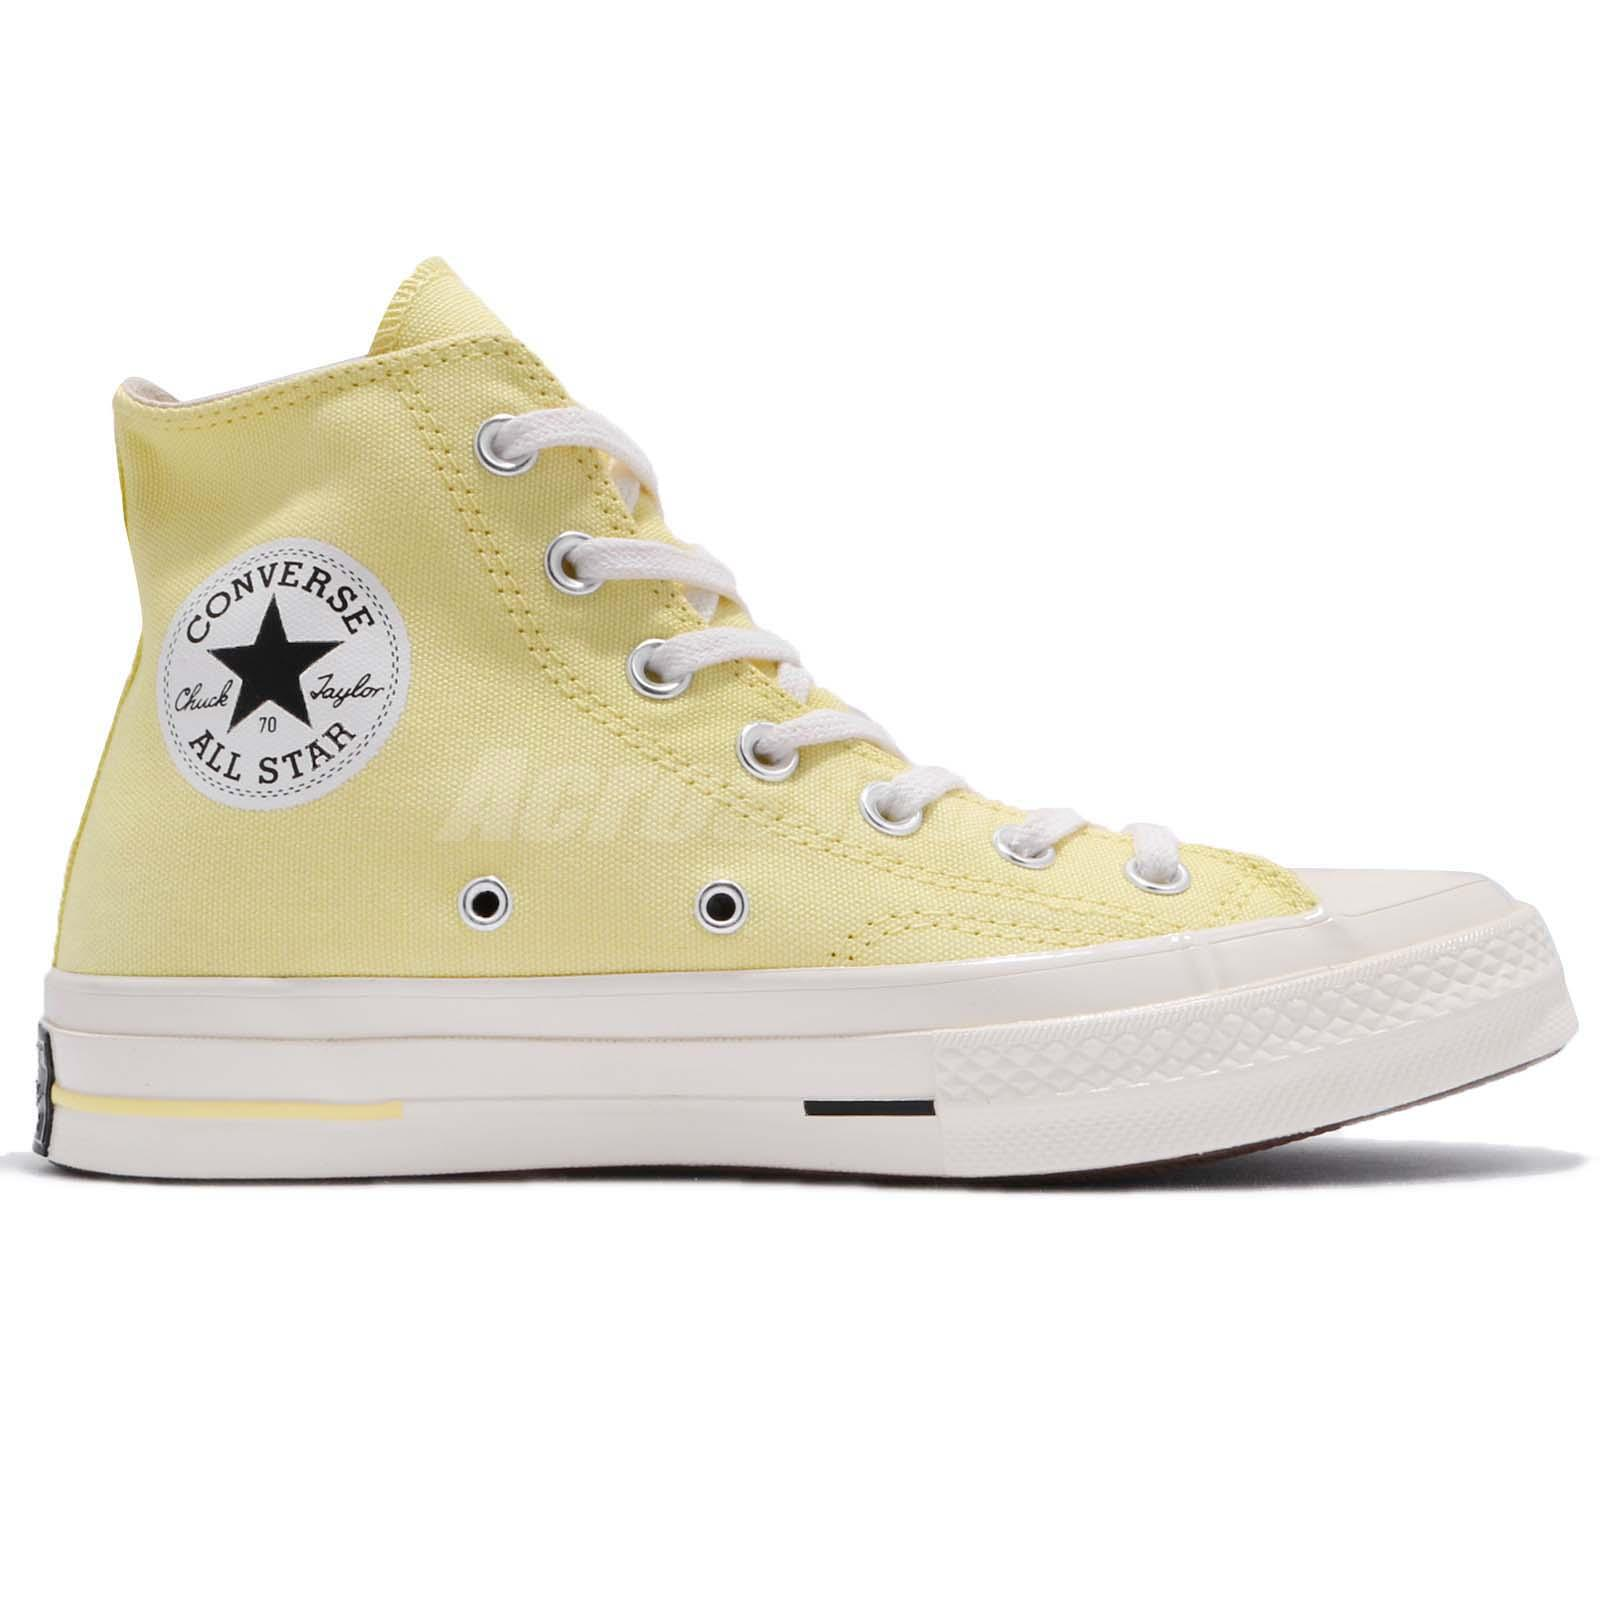 Converse first string chuck taylor all star 1970s bright high size chart nvjuhfo Gallery